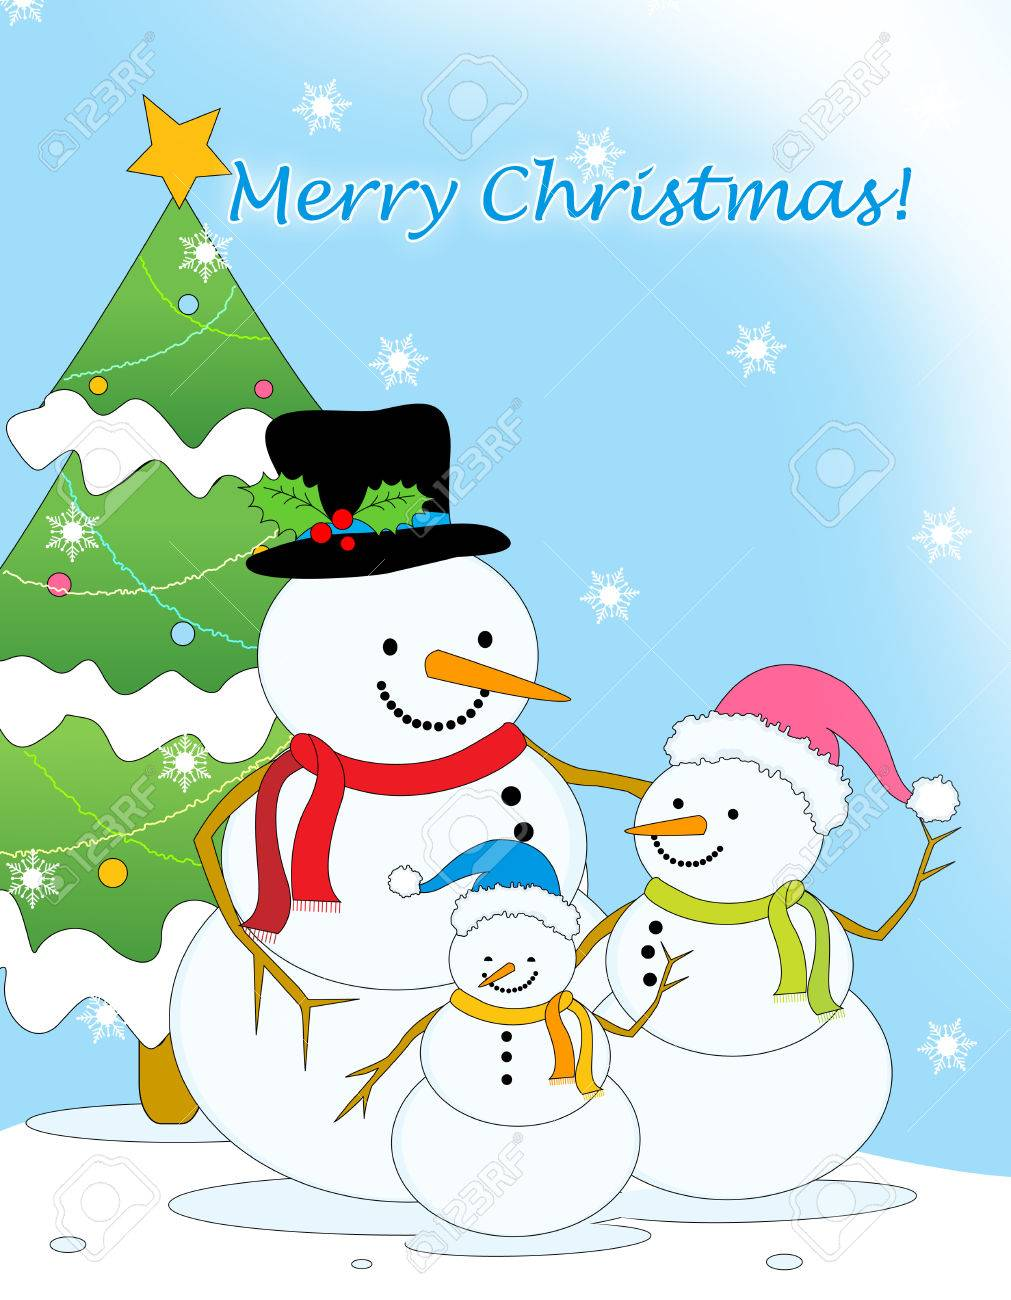 Merry christmas greeting card with cute little snowman family merry christmas greeting card with cute little snowman family and christmas tree on falling snow background kristyandbryce Choice Image